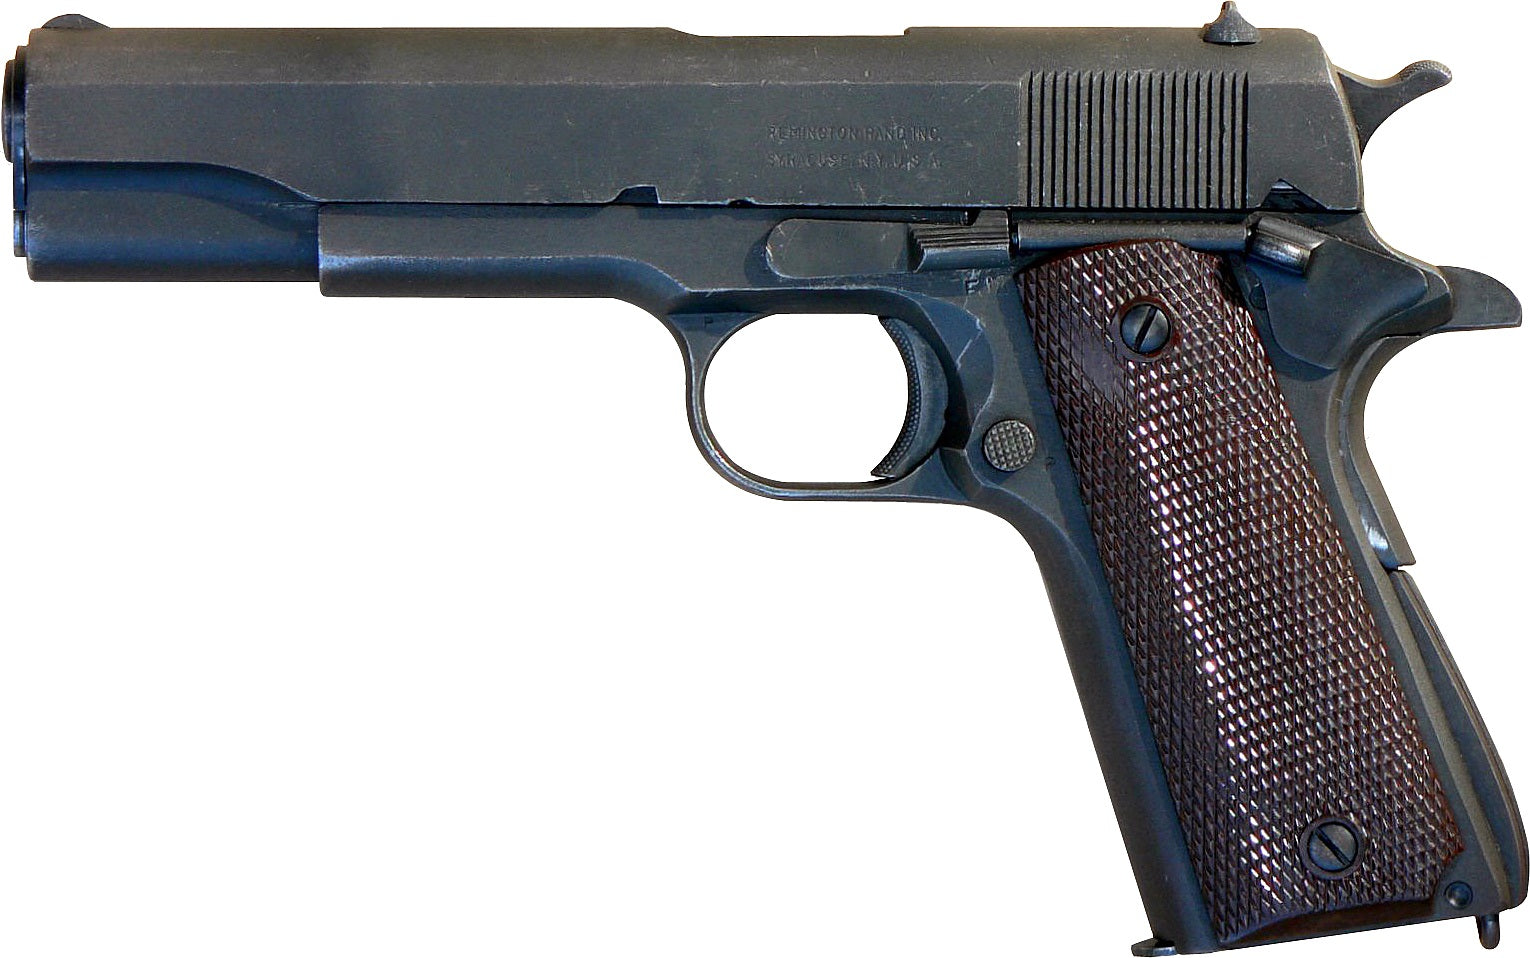 The History of the Model 1911 Pistol